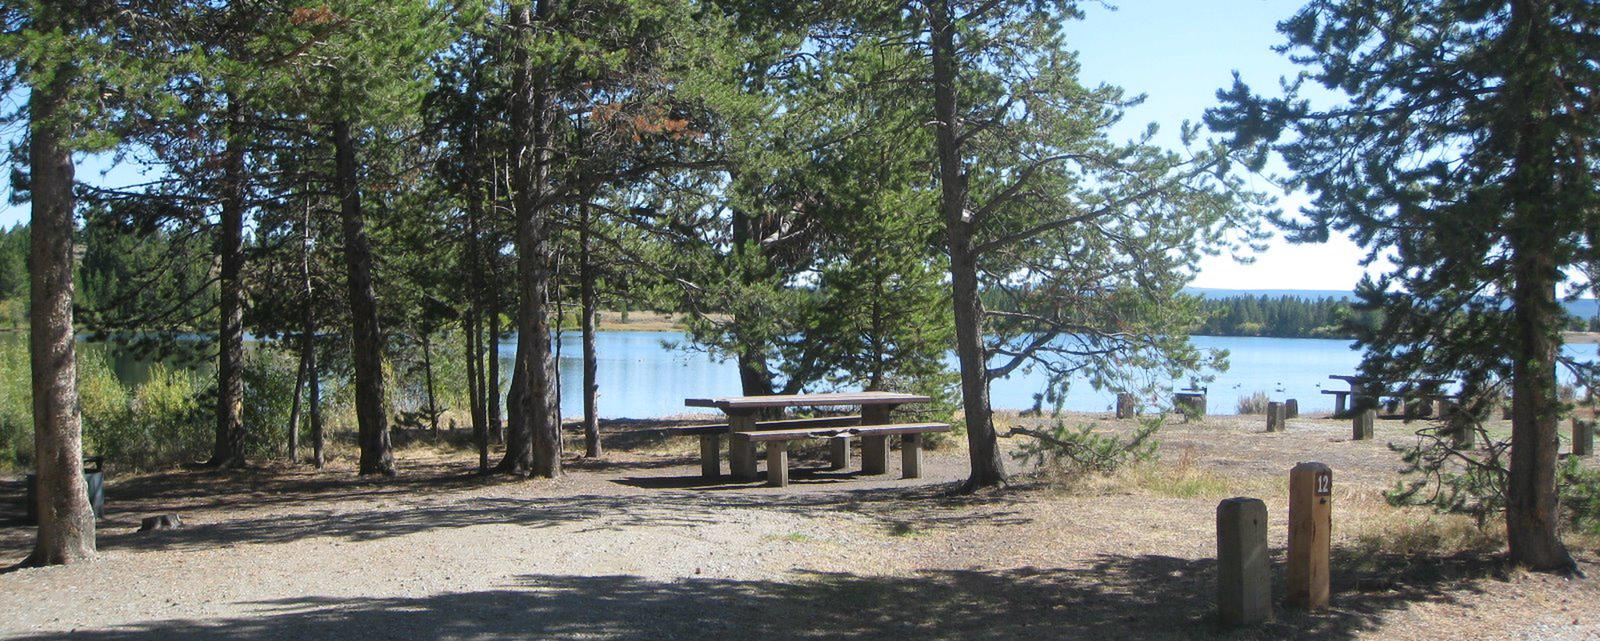 Site 12, campsite surrounded by pine trees, picnic table & fire ringSite 12